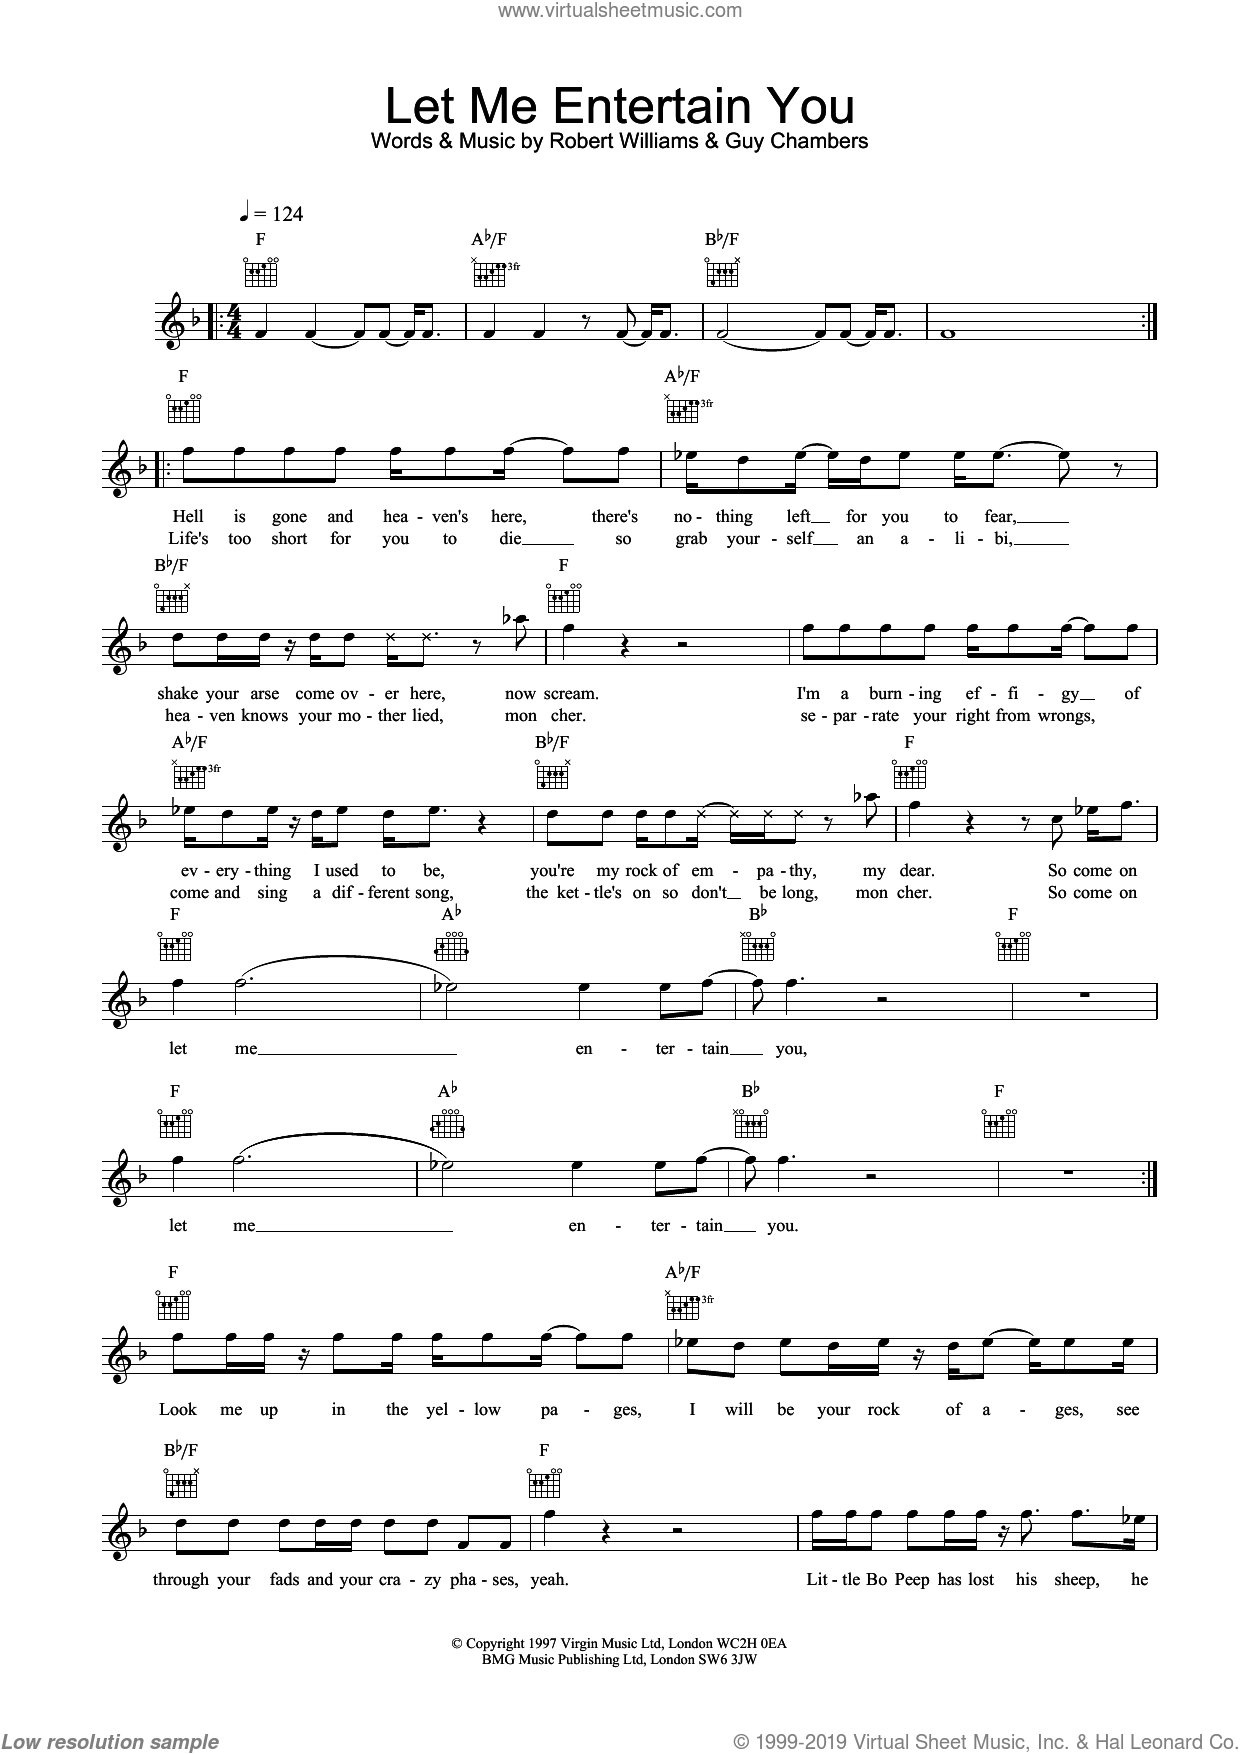 Let Me Entertain You sheet music for voice and other instruments (fake book) by Robbie Williams and Guy Chambers, intermediate skill level